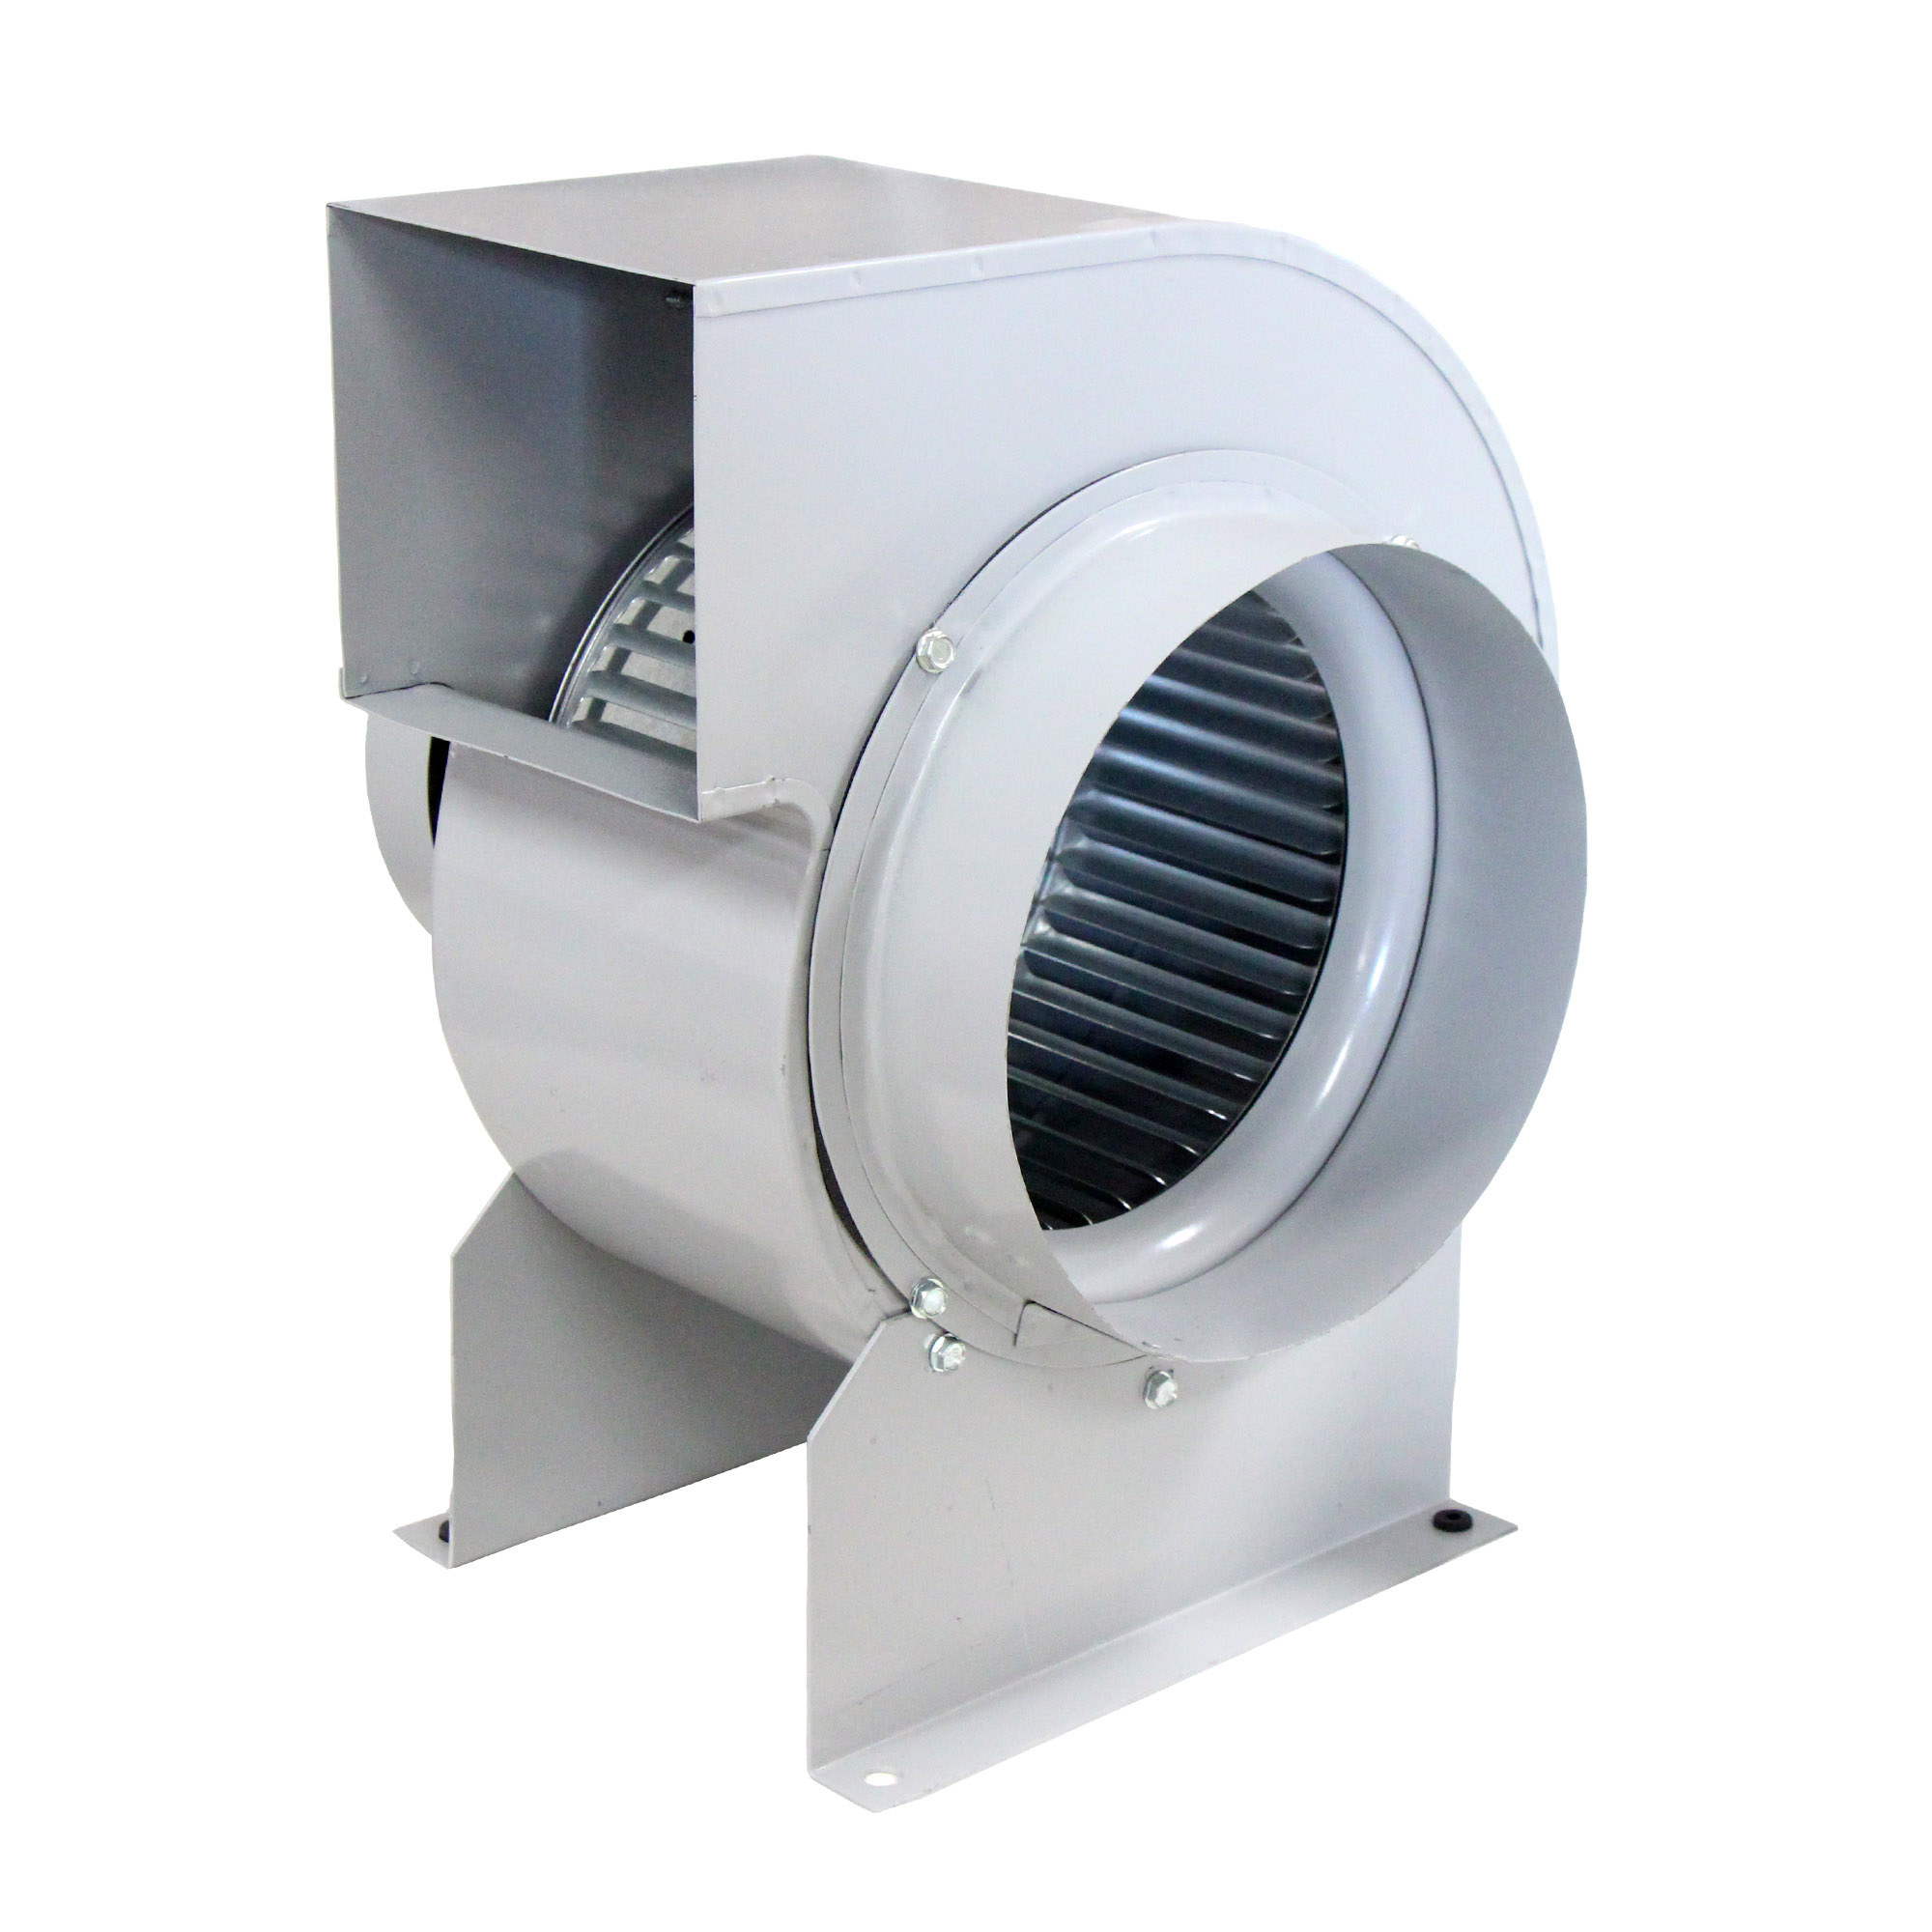 Reversomatic Commercial Industrial Ventilation Exhaust Fan GPB-200